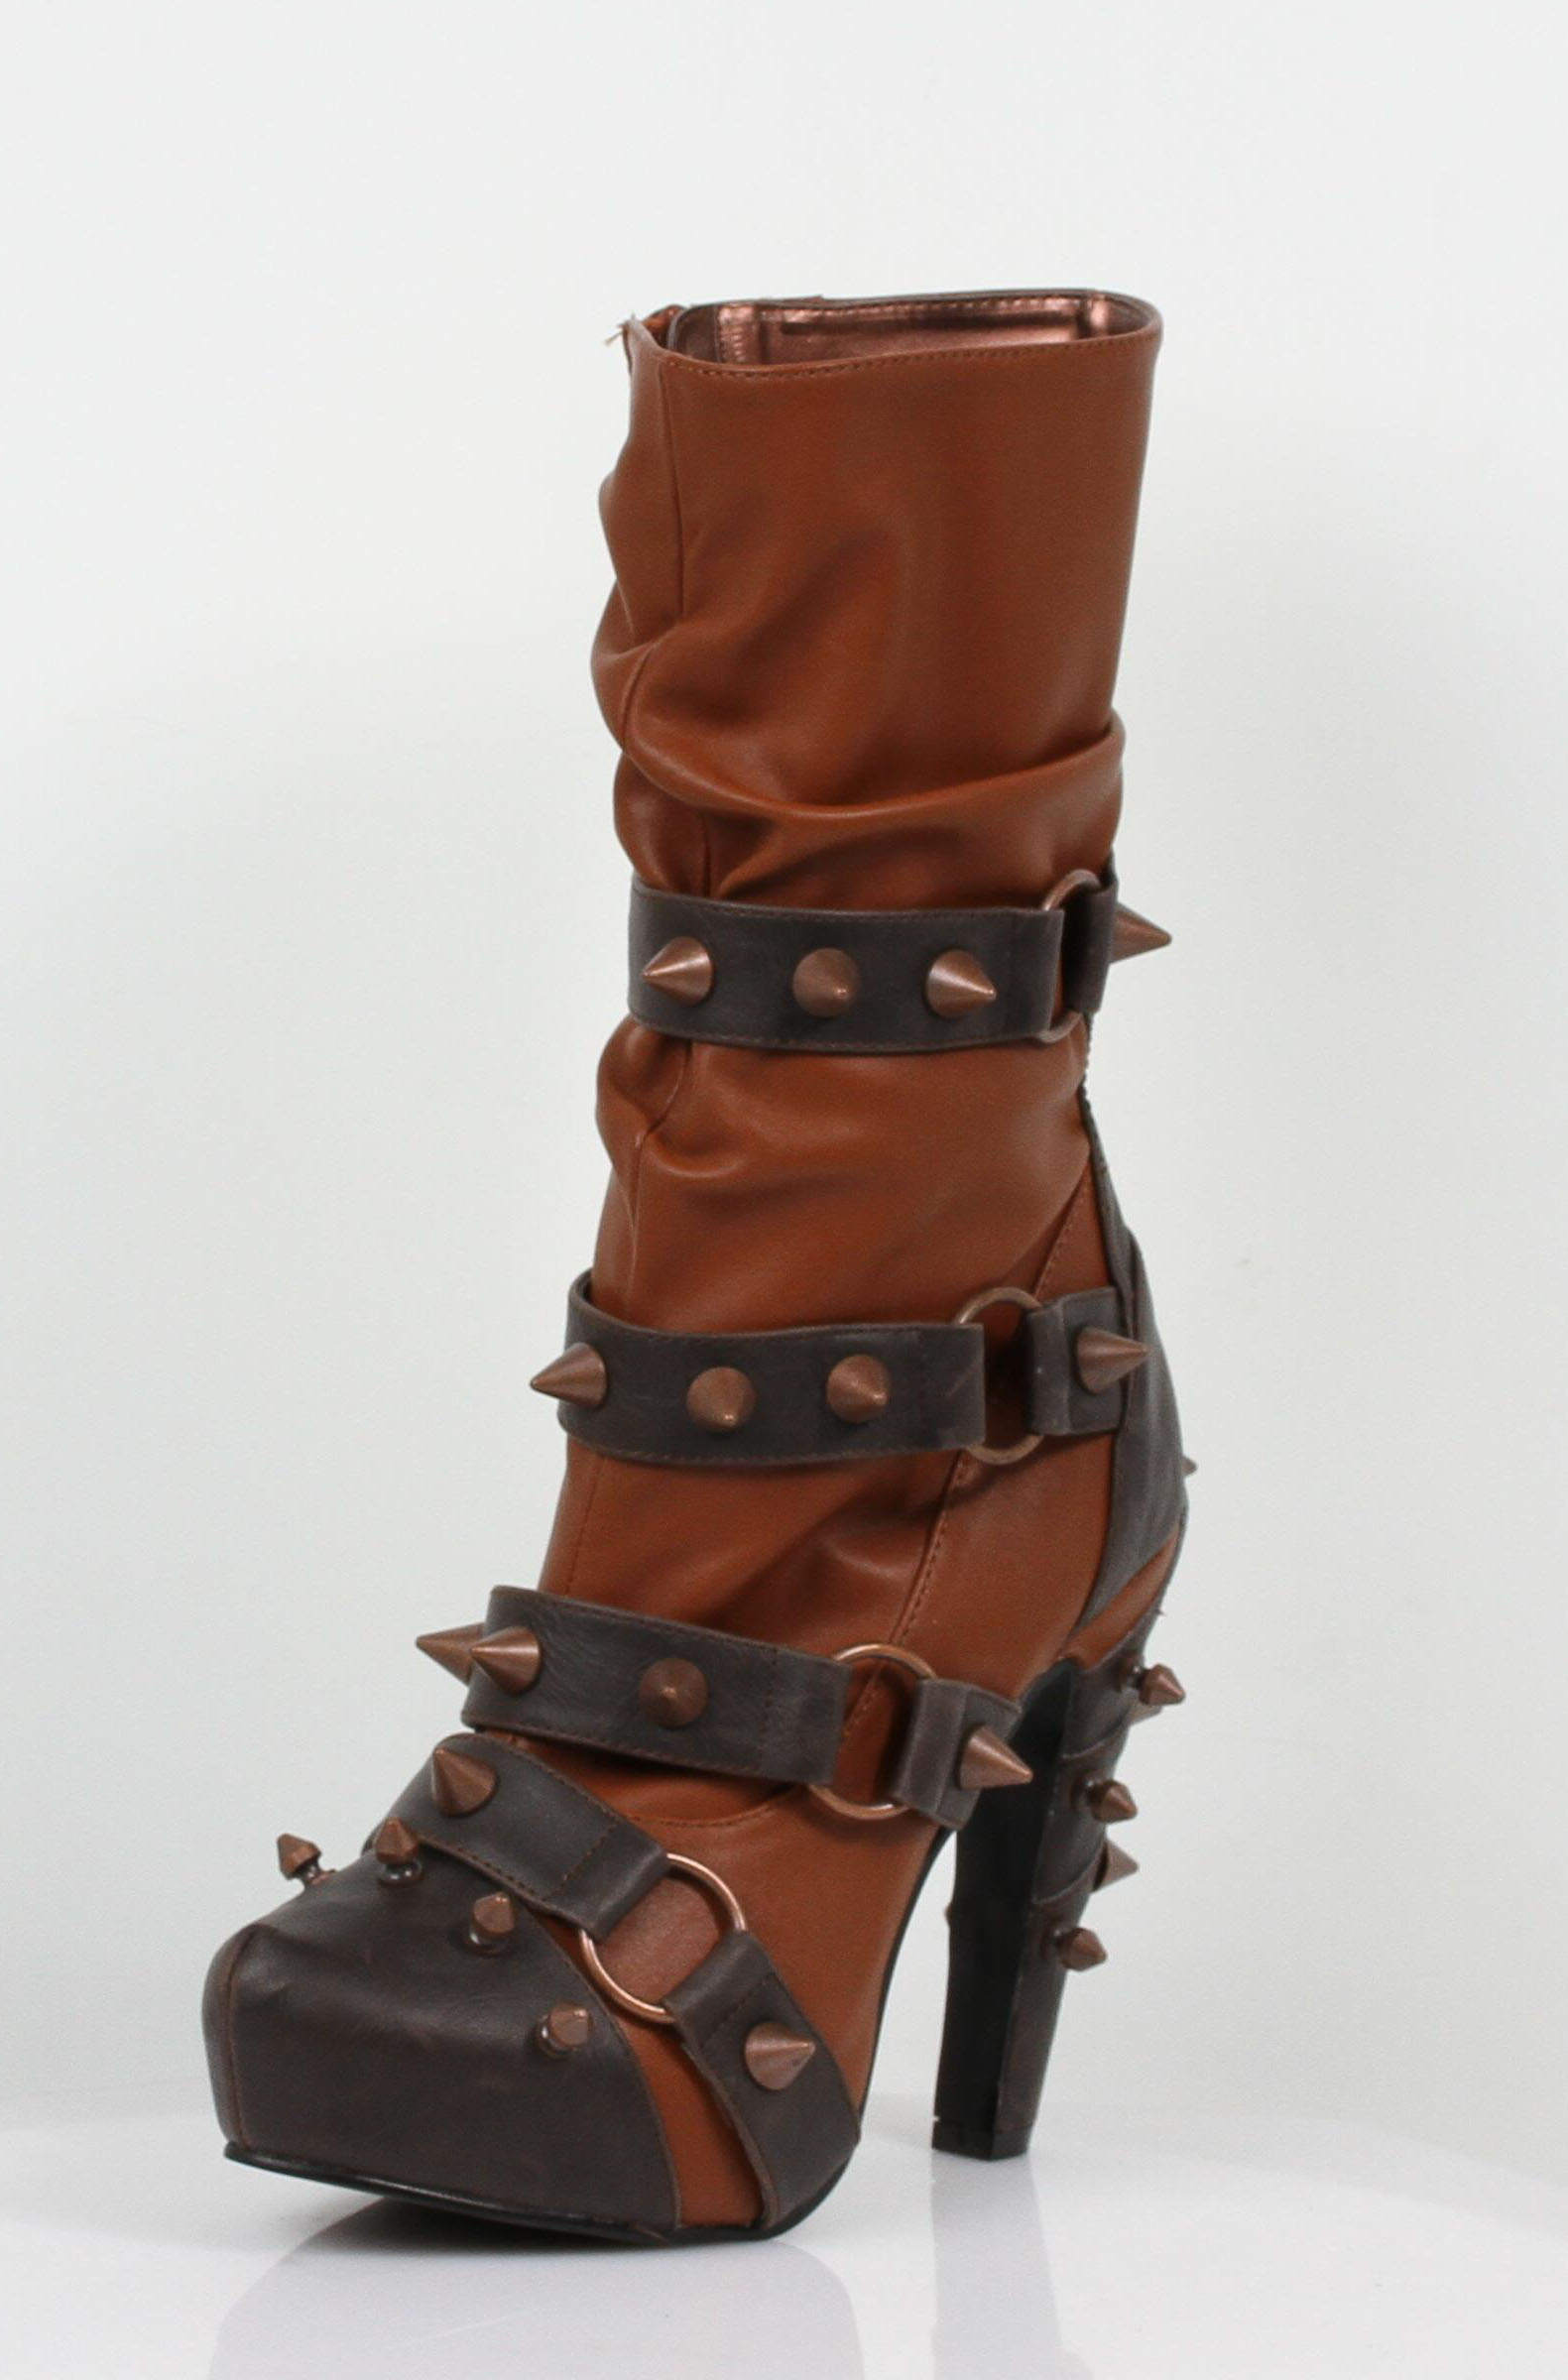 hades_shoes_womens_bjorn_brick_studded_steampunk_boots_boots_3.jpg